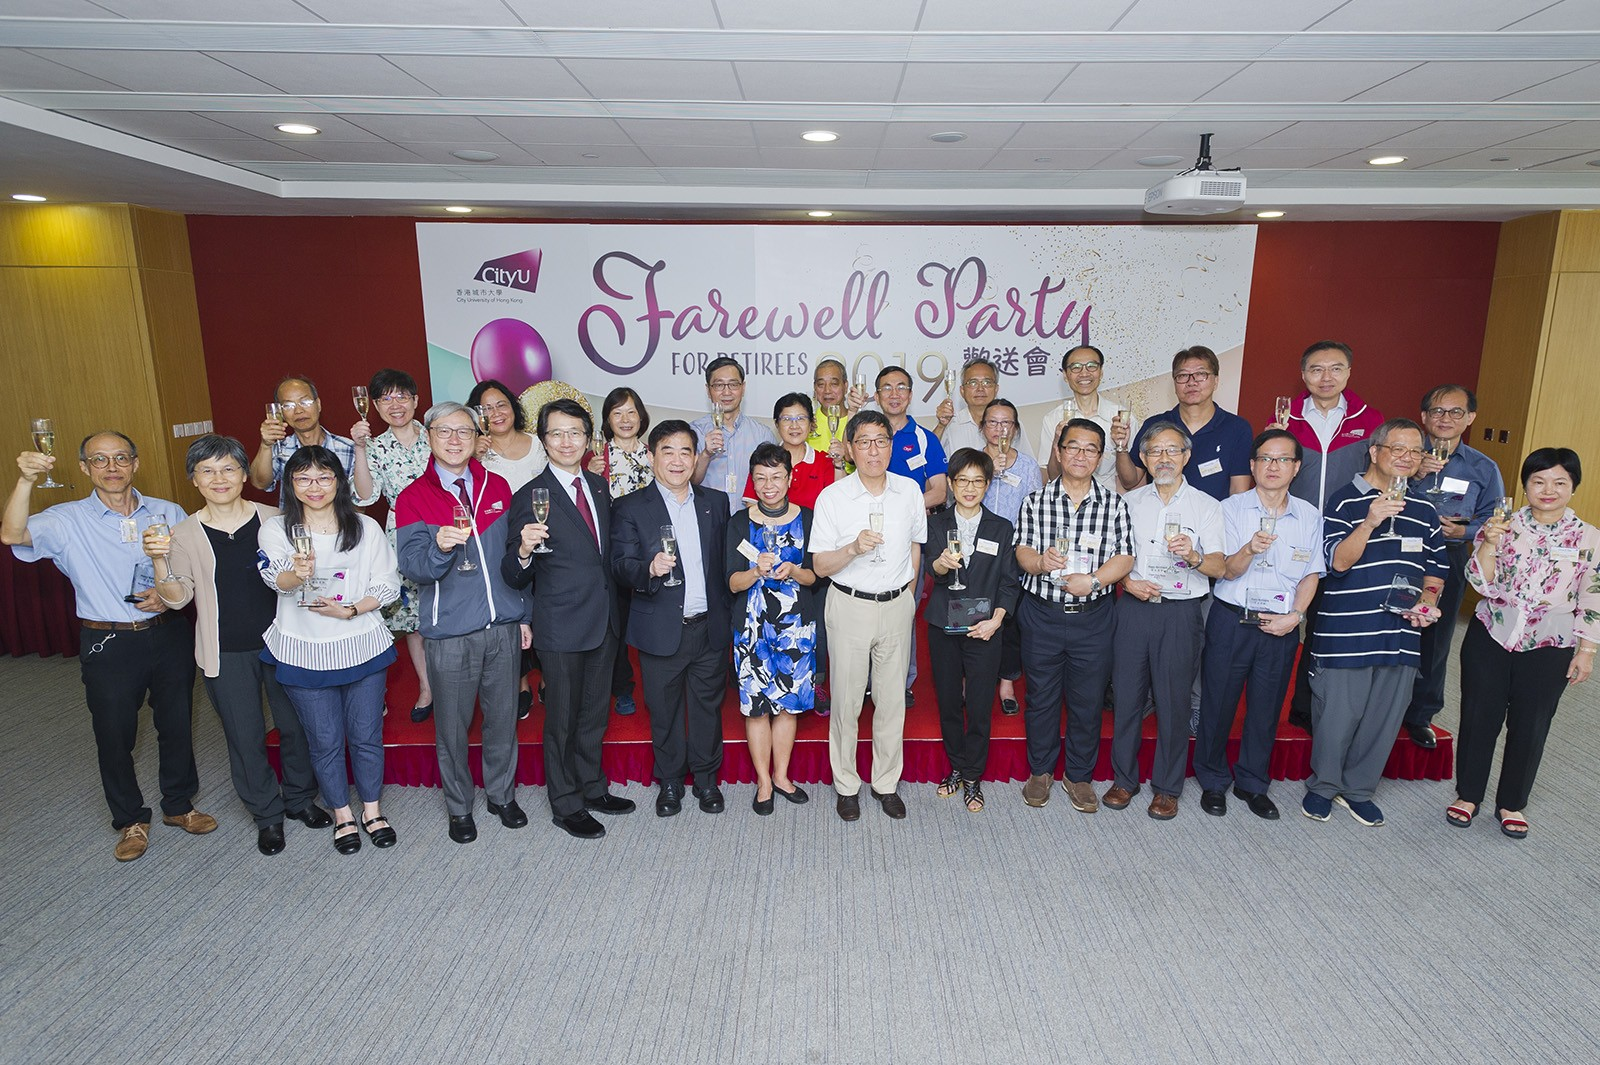 Senior management and retirees of CityU at the farewell party.